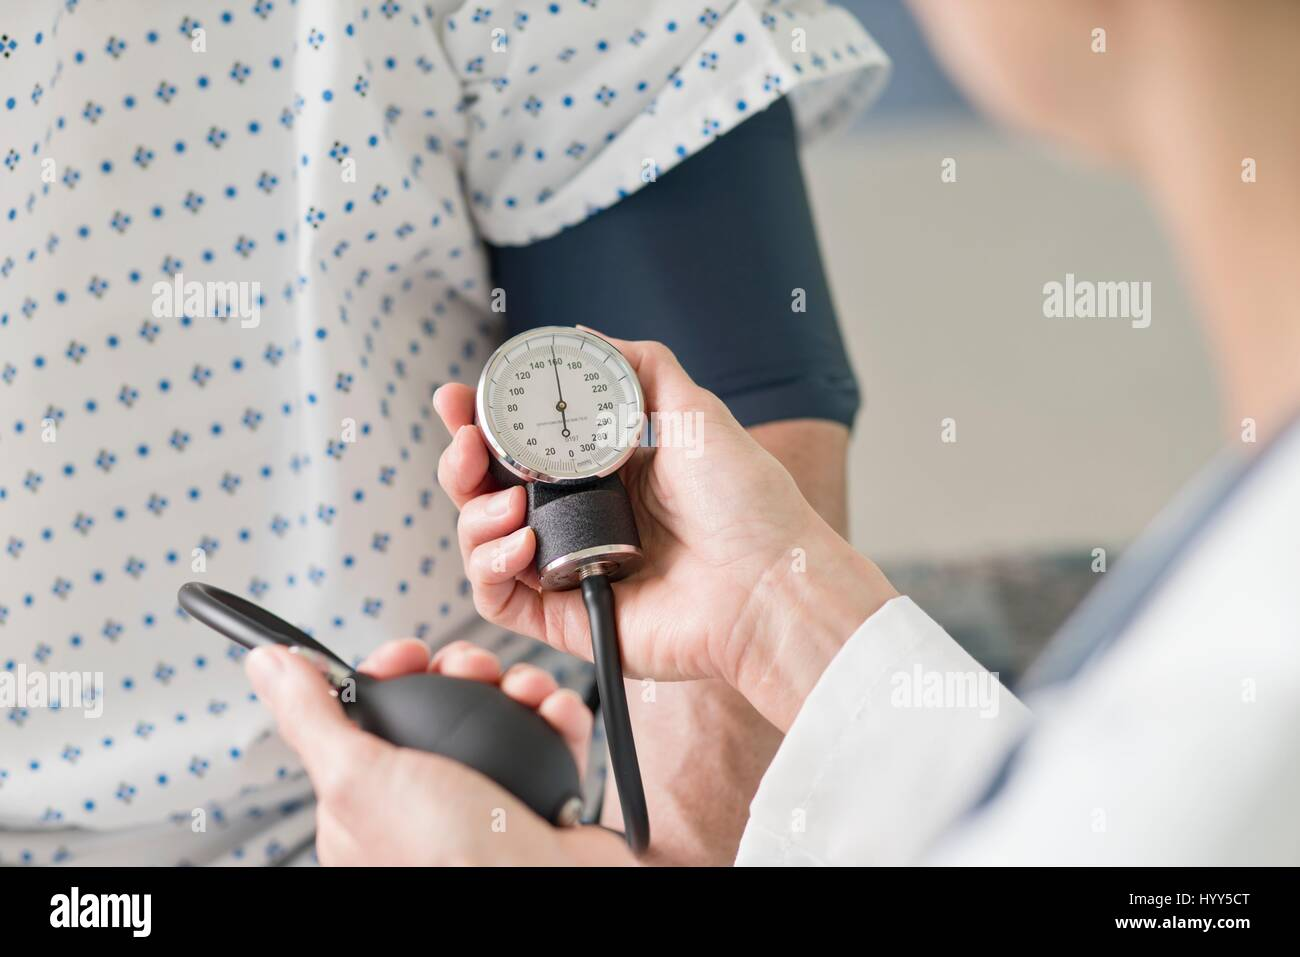 Doctor taking patient's blood pressure. - Stock Image